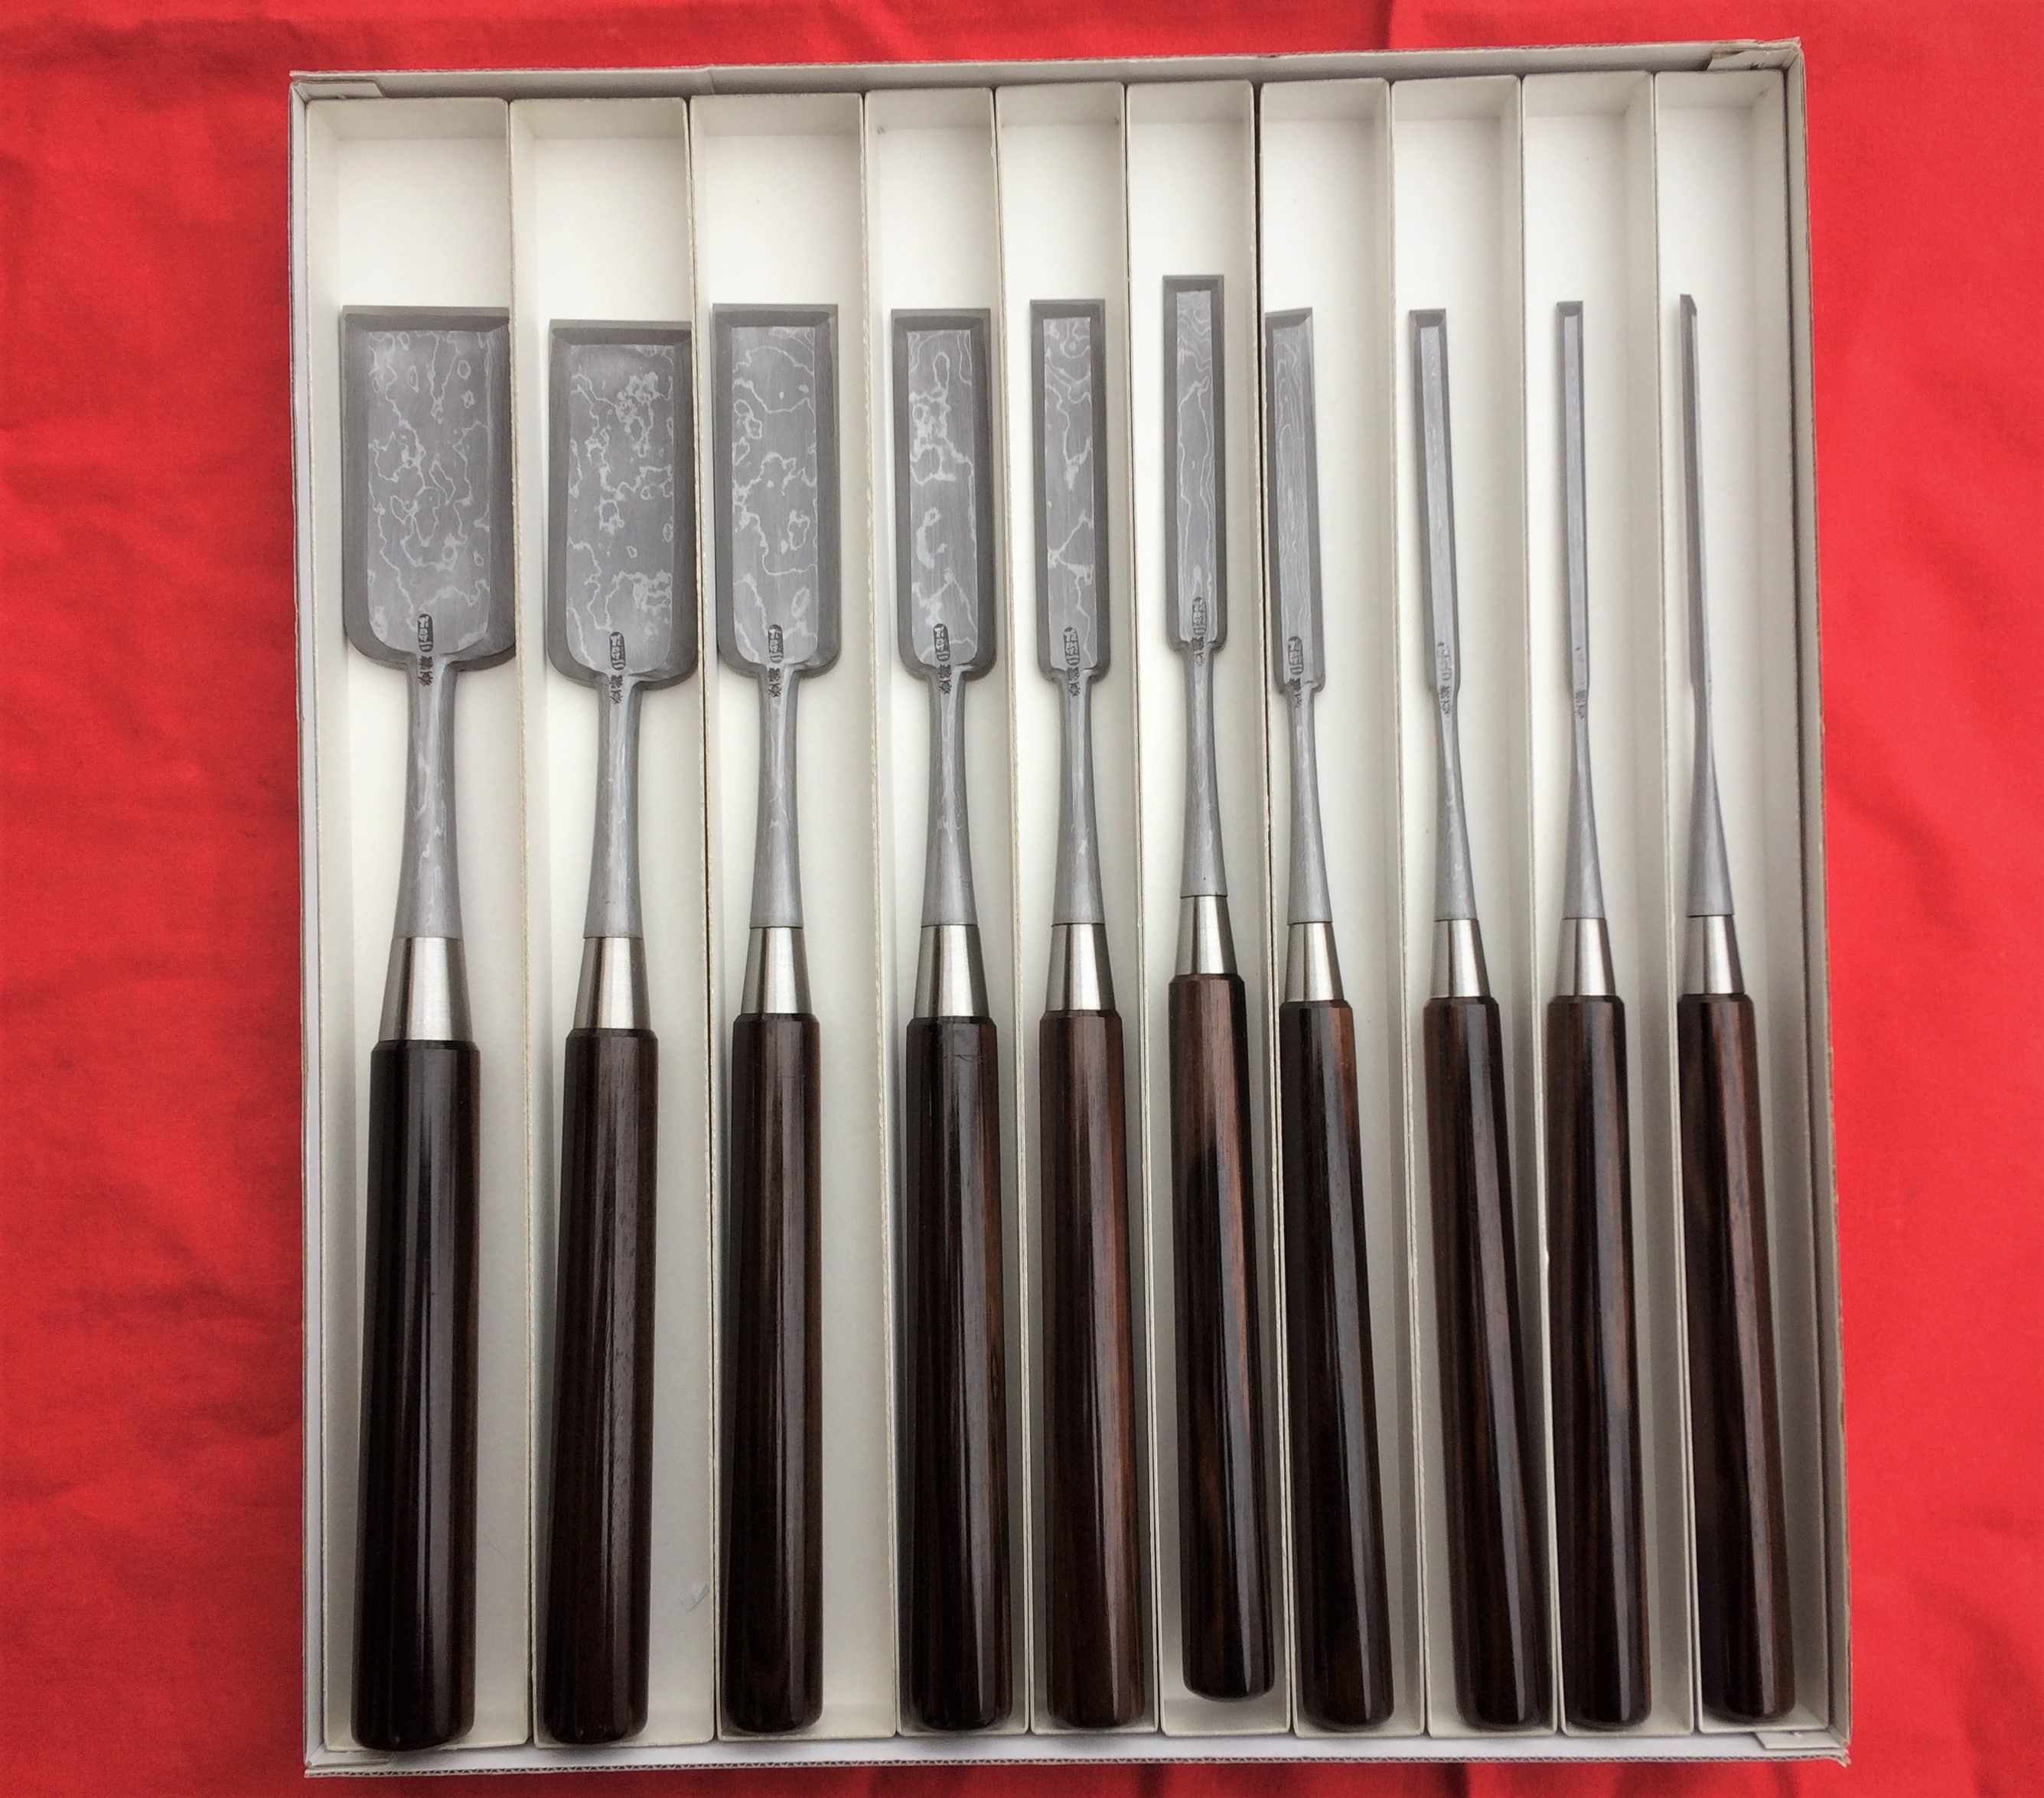 Set of ten Sword steel paring chisels(Very thin push chisels) by Fujihiro